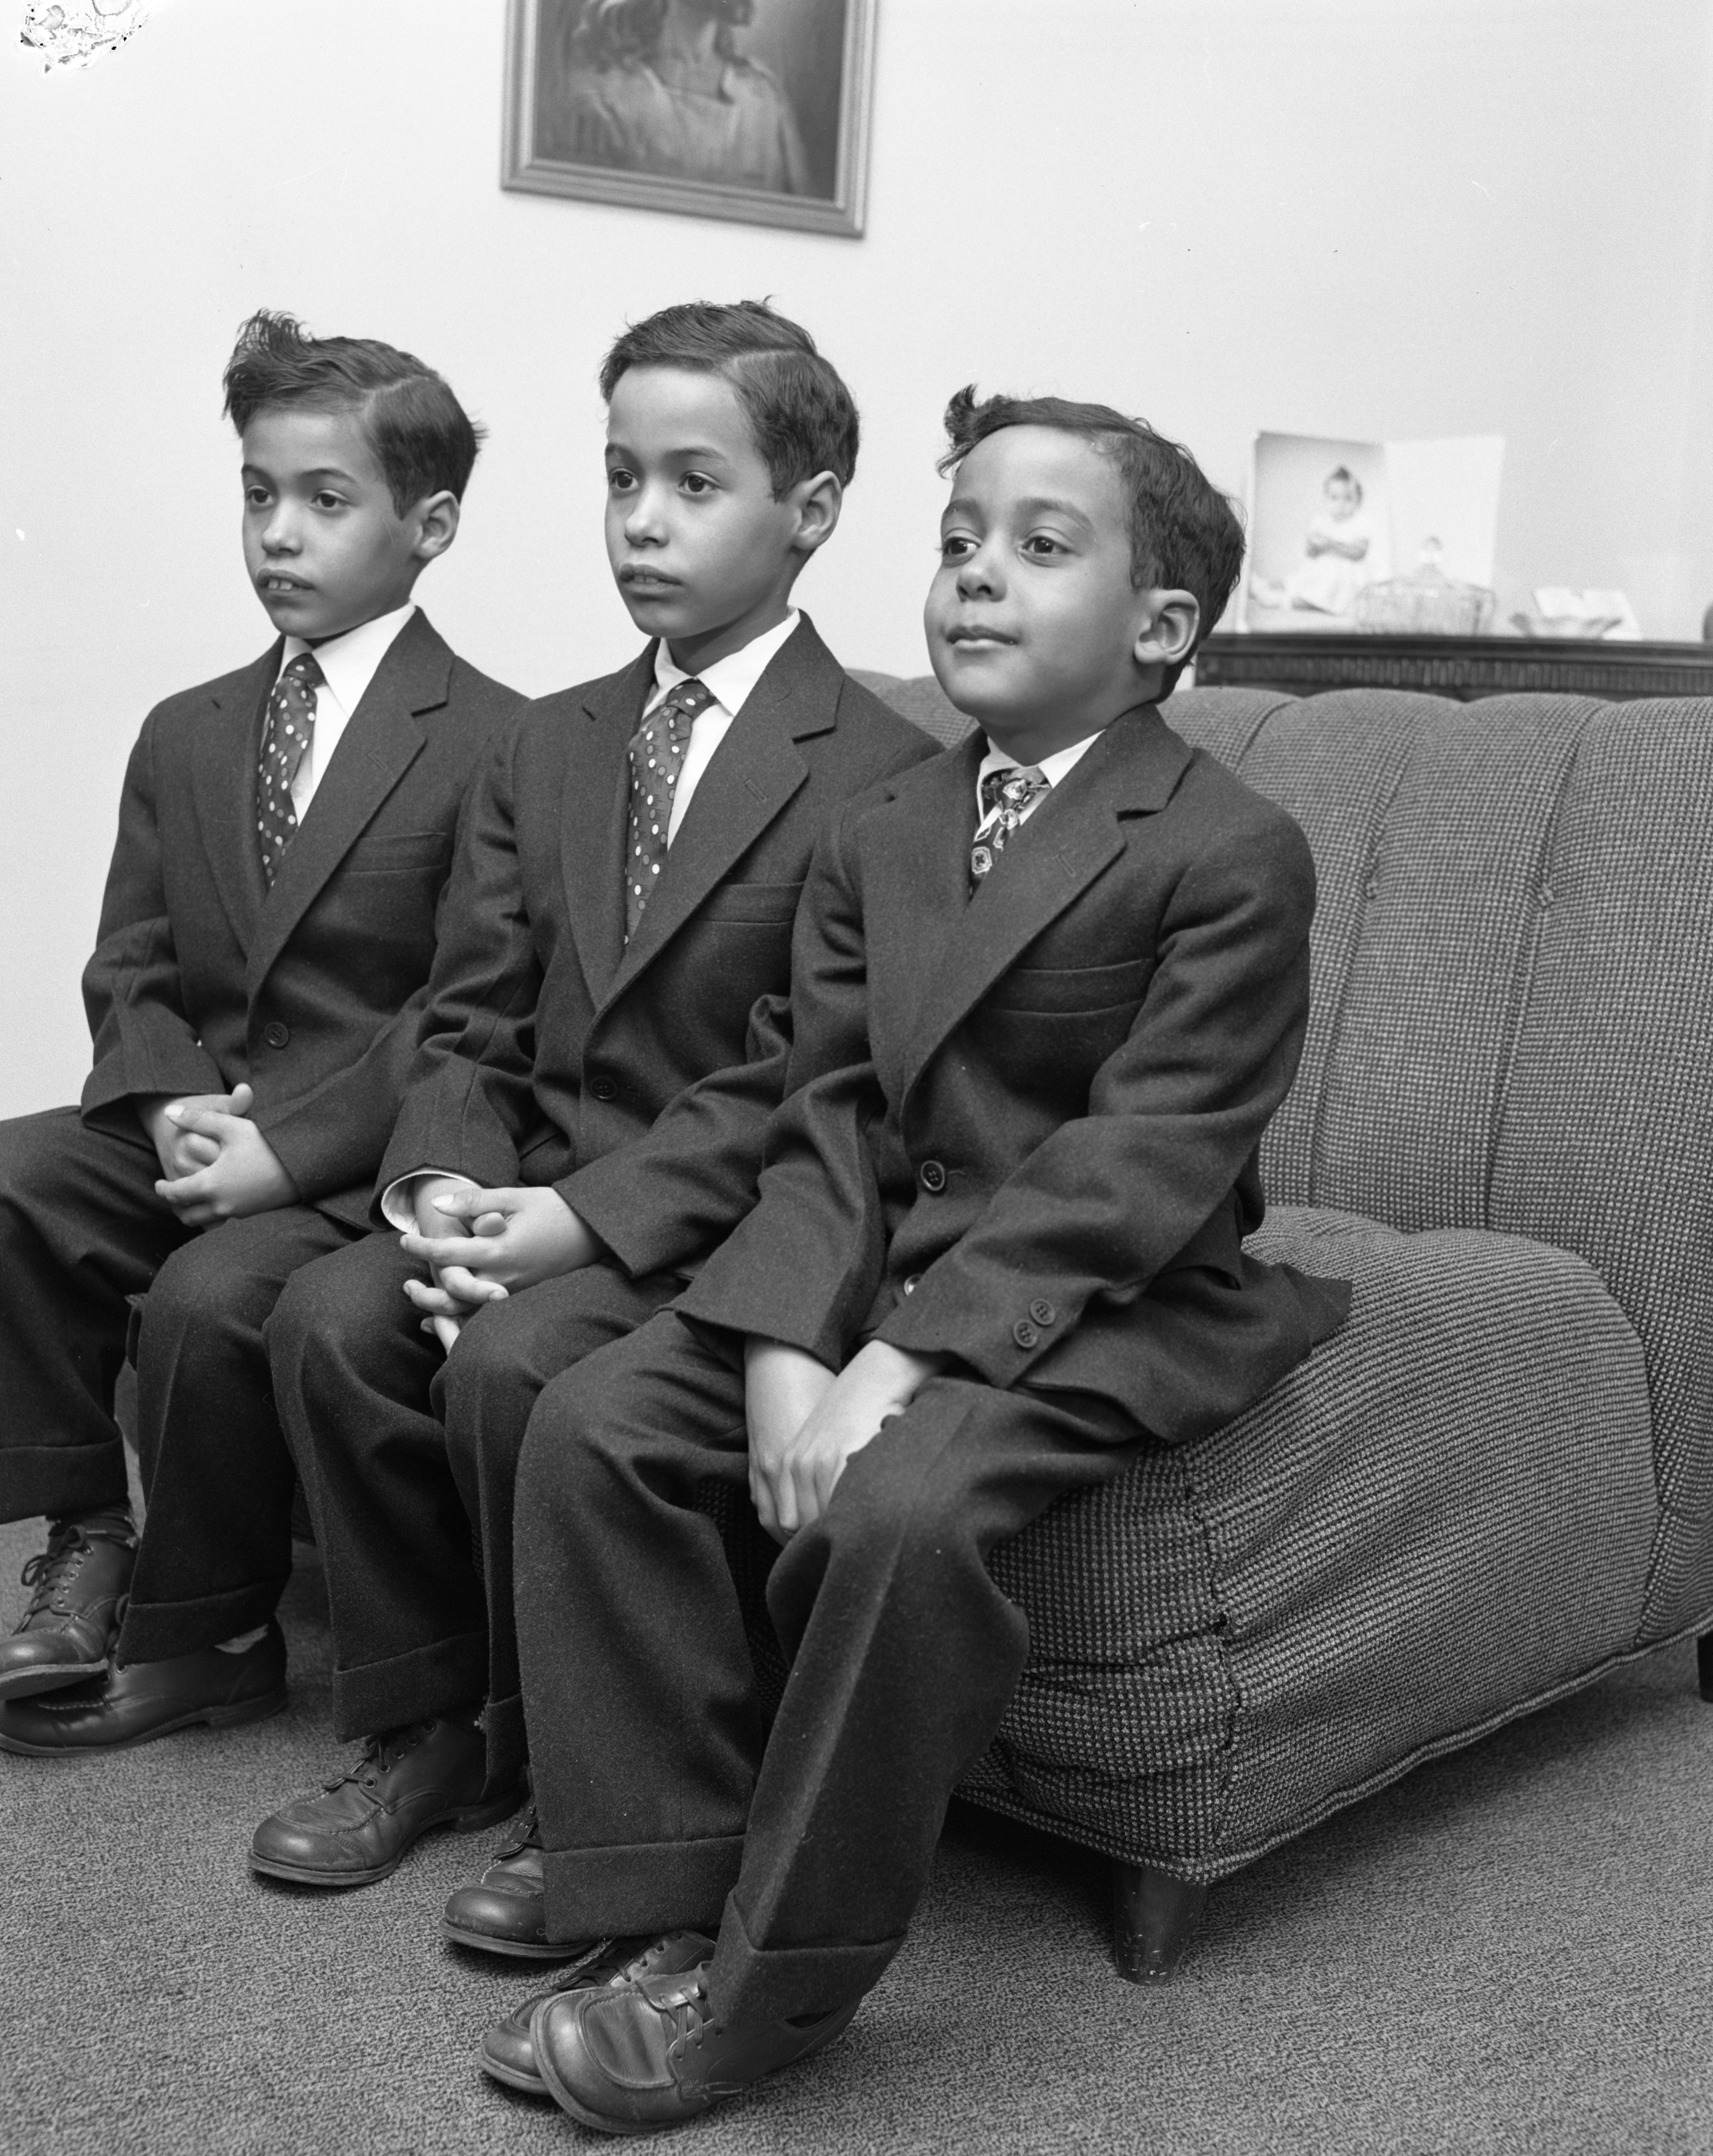 Larry Steven Parks, Lawrence Starling Parks, and Leo Stanley Parks Dressed for Church, March 1956 image